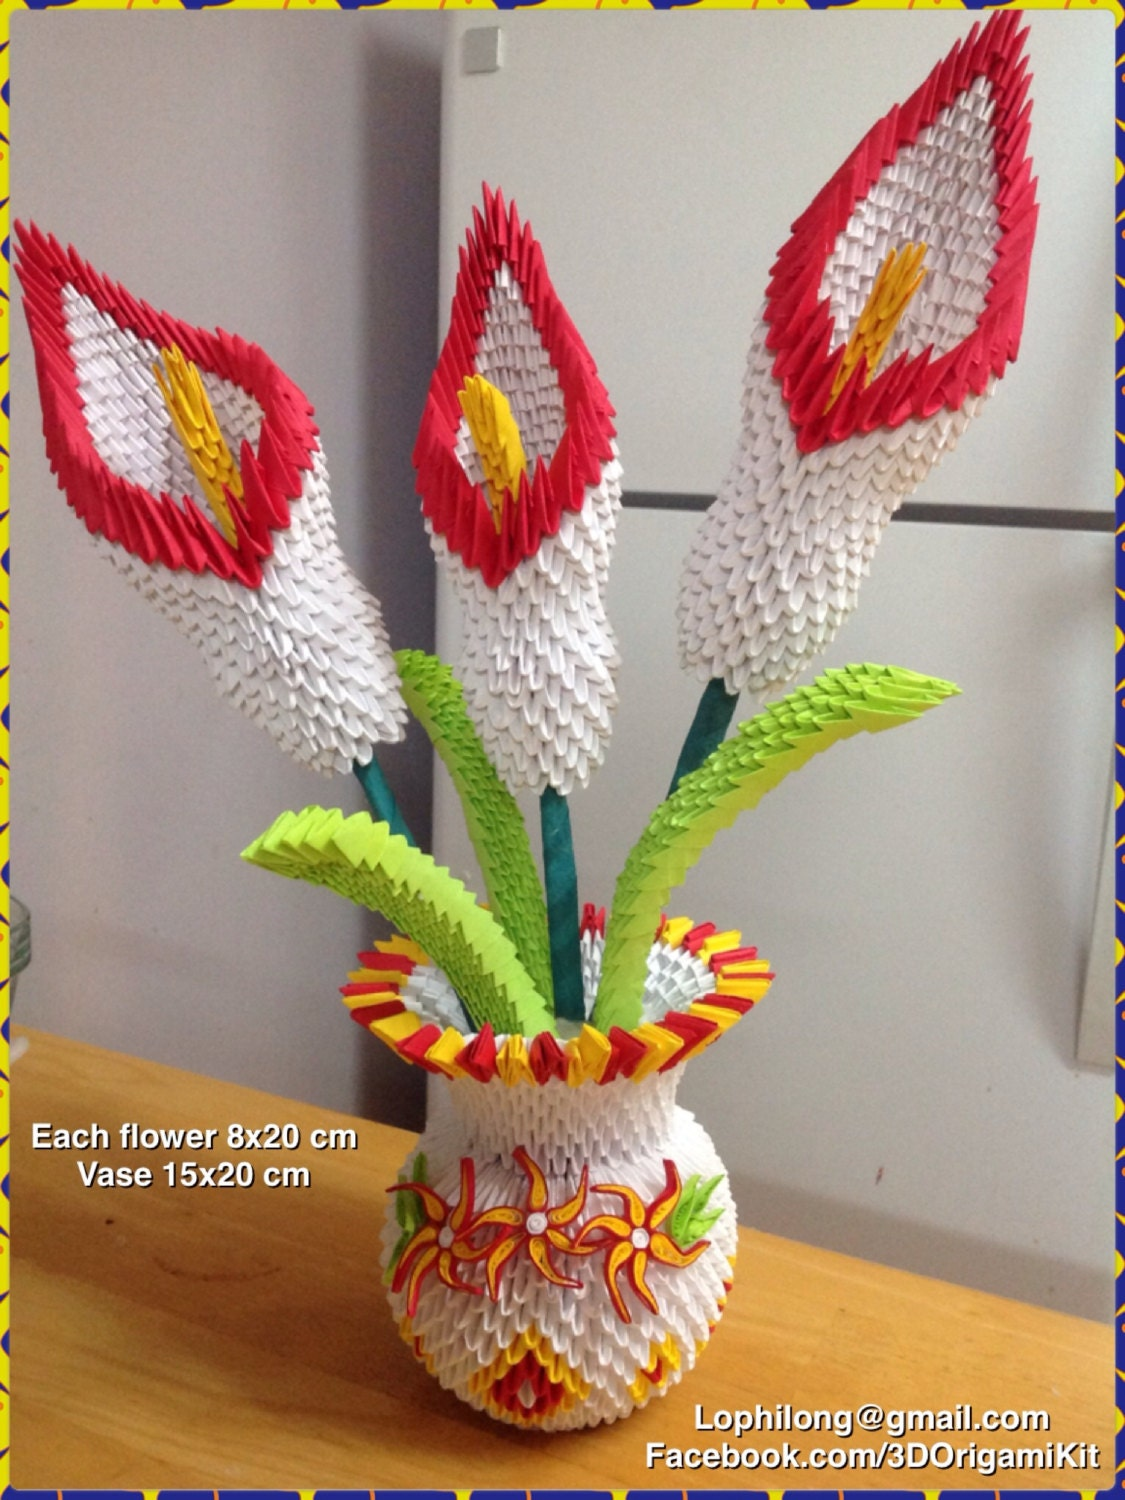 3D Origami: Lily vase Lily origami flower paper Decoration - photo#7